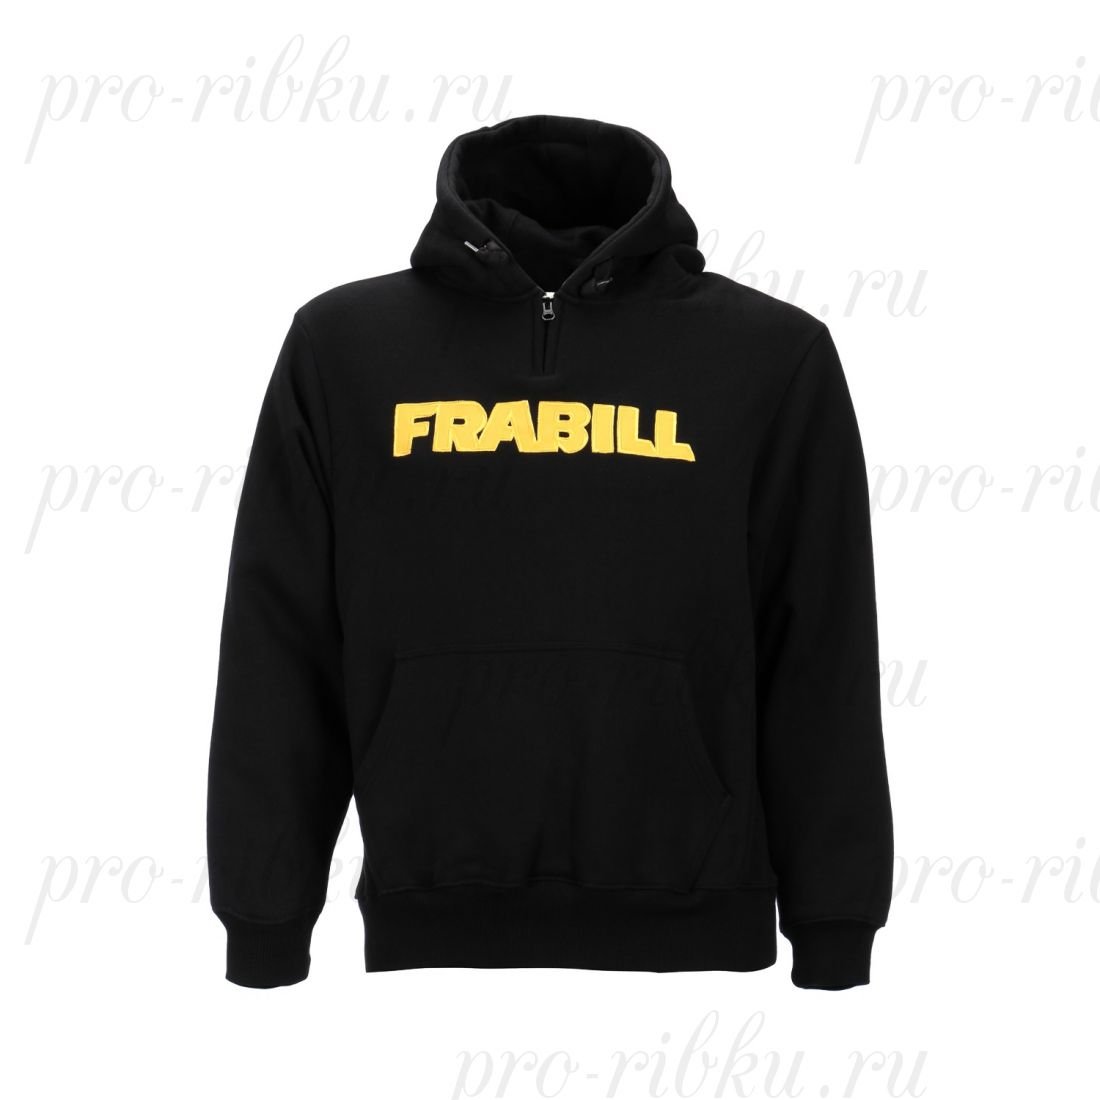 Кенгурушка Frabill Heavyweight Cotton Hooded Sweatshirt черная размер L